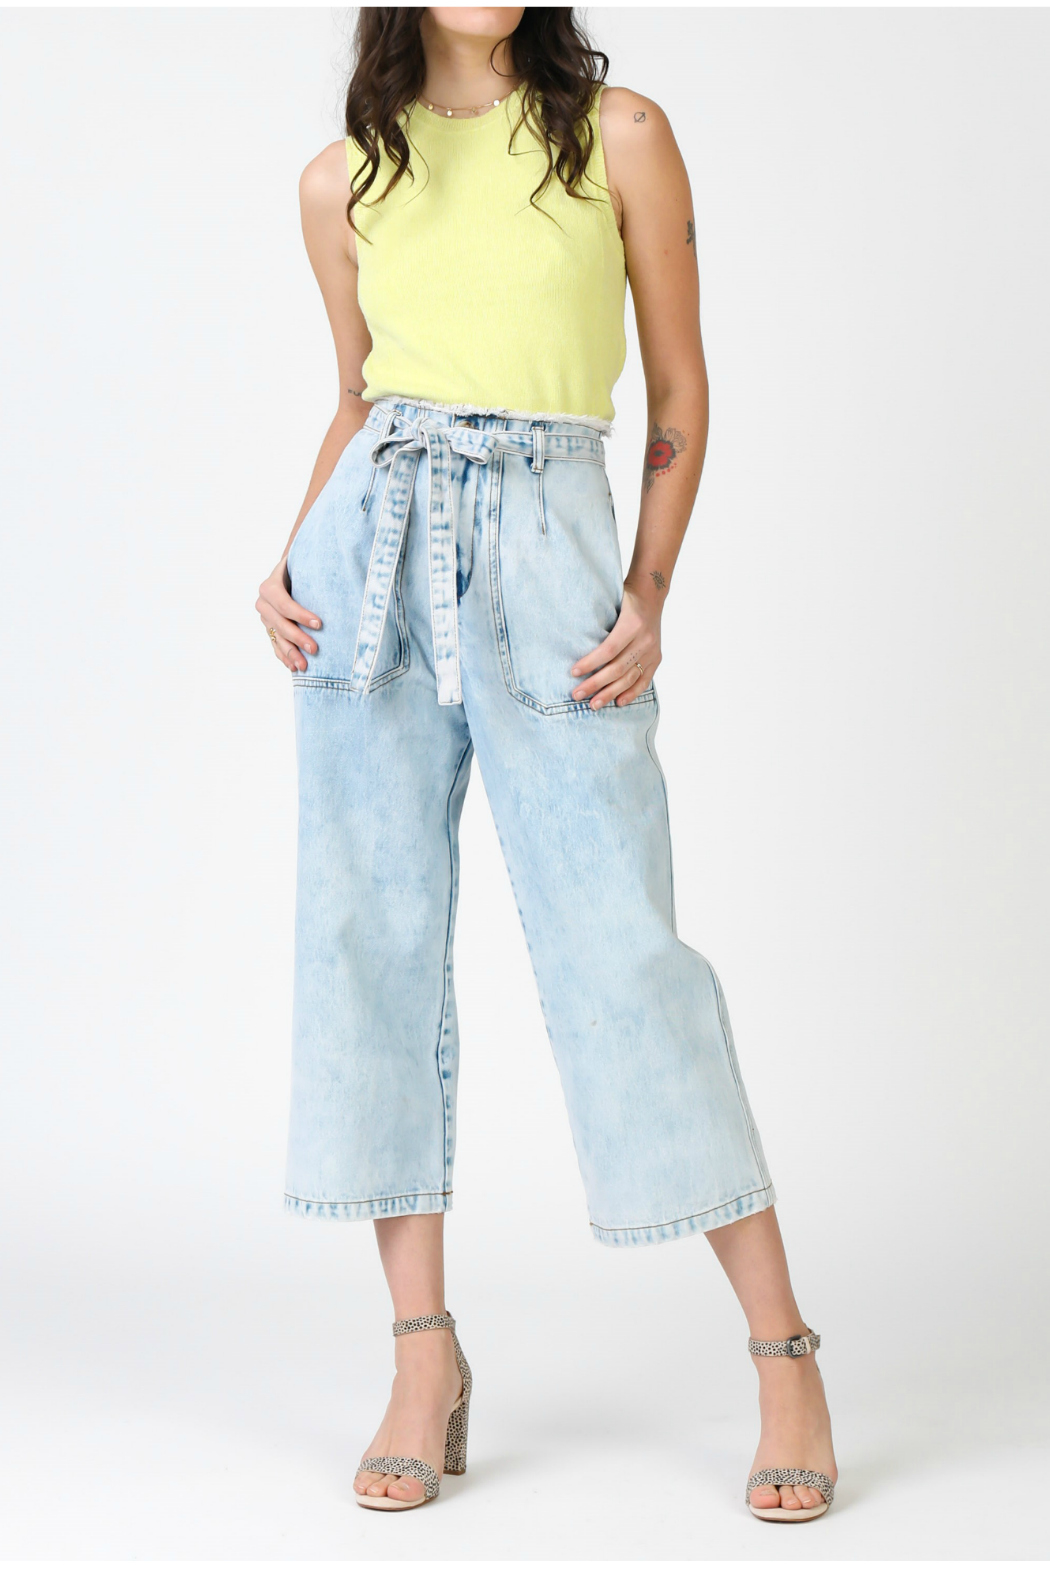 Current Air Denim cropped pants with waist tie - Main Image